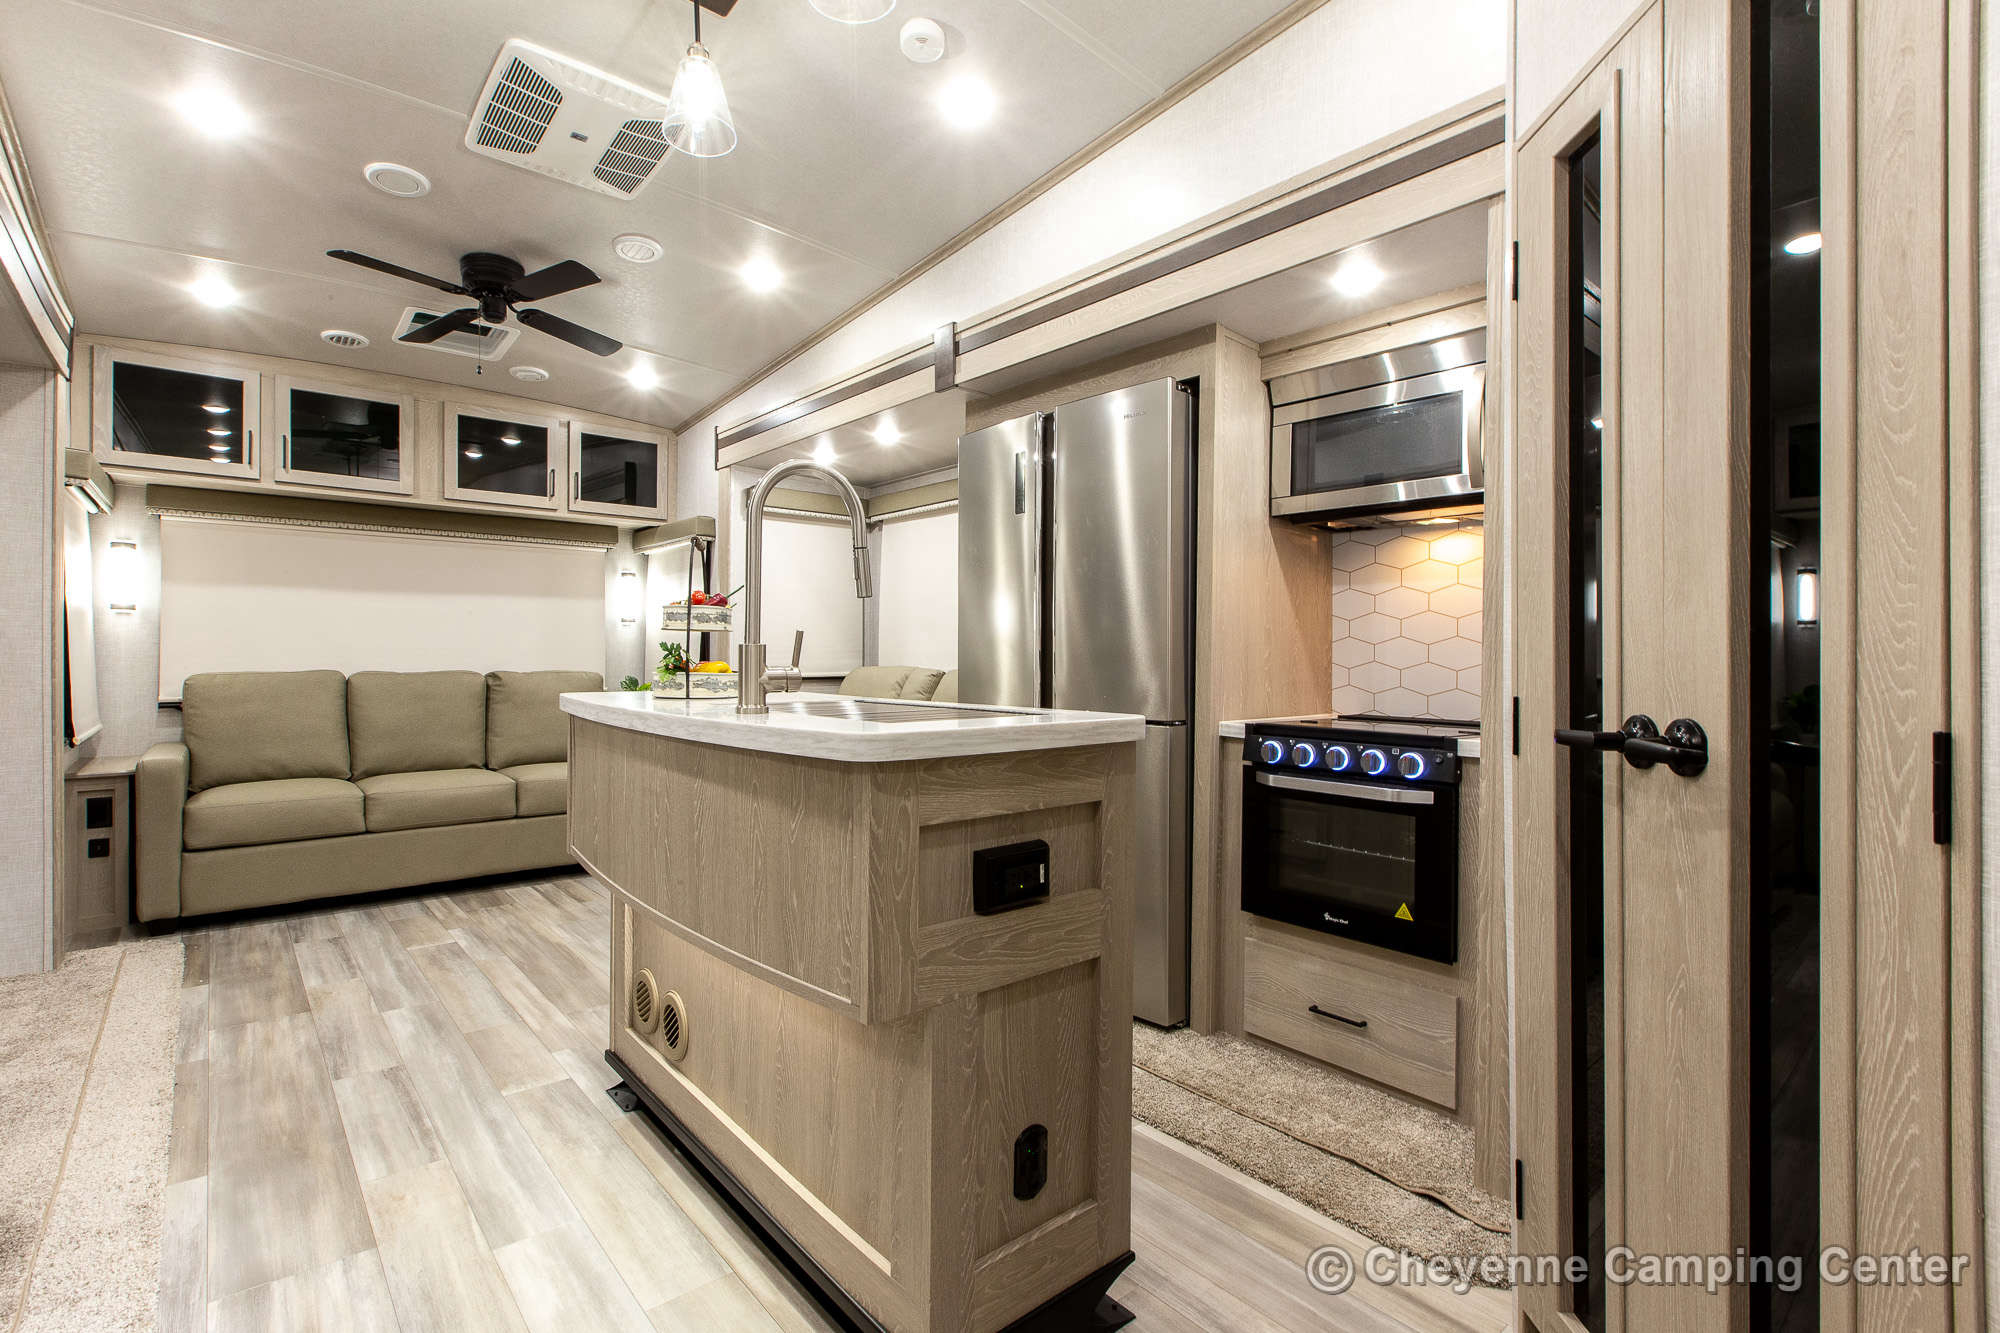 2022 Forest River Classic by Flagstaff 8529CSB Fifth Wheel Interior Image